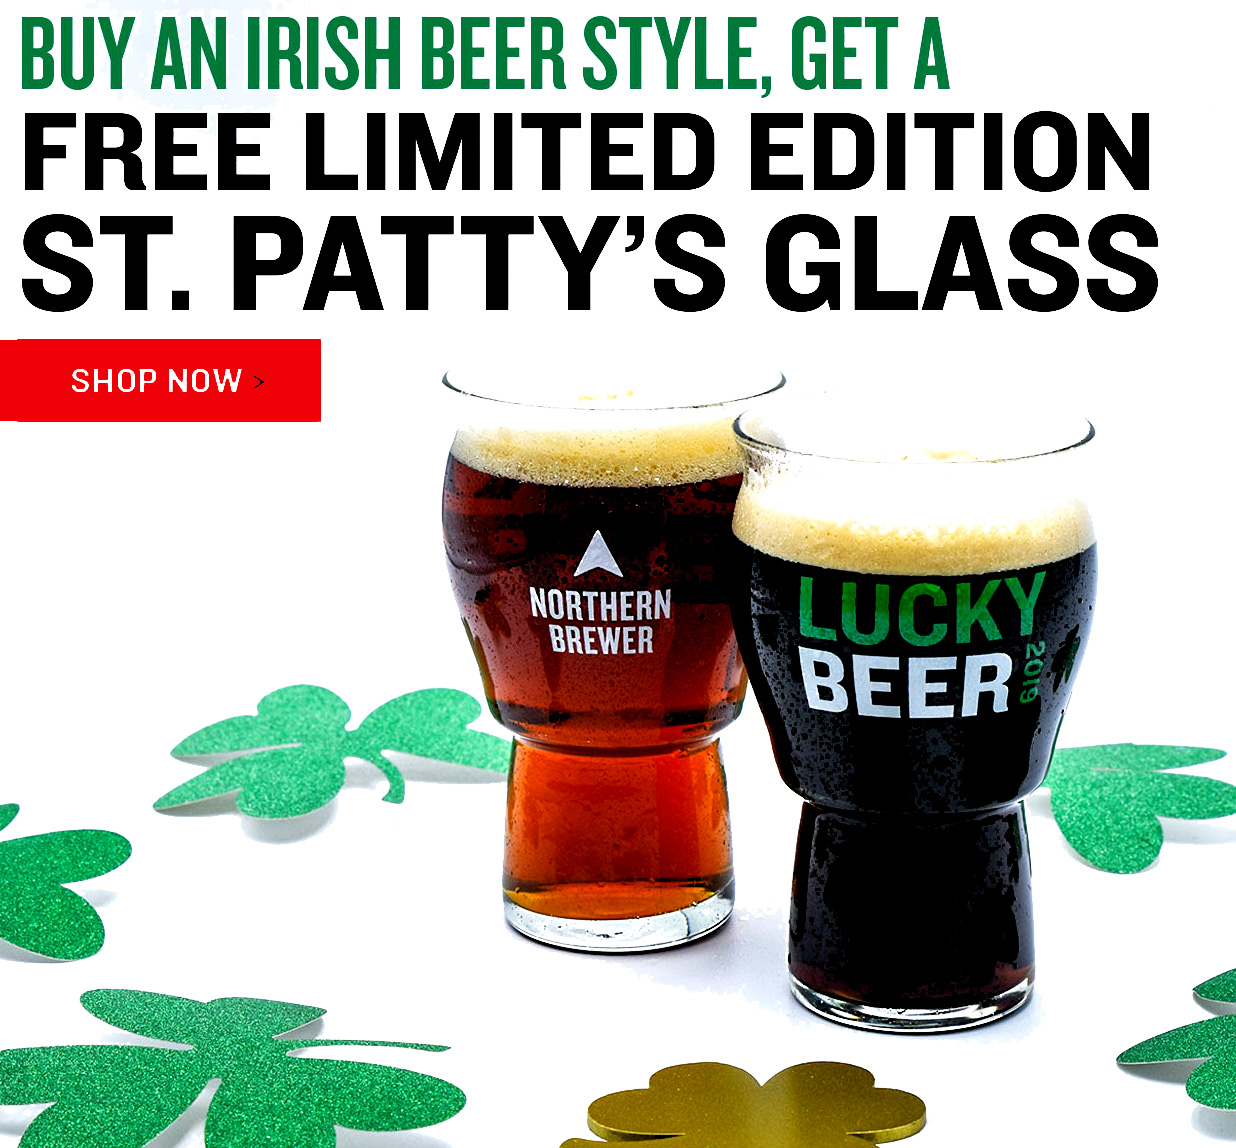 Northern Brewer Buy an Irish Red Ale or Dry Irish Stout Recipe Kit And Get A Free Glass With This NorthernBrewer.com Promo Code Coupon Code